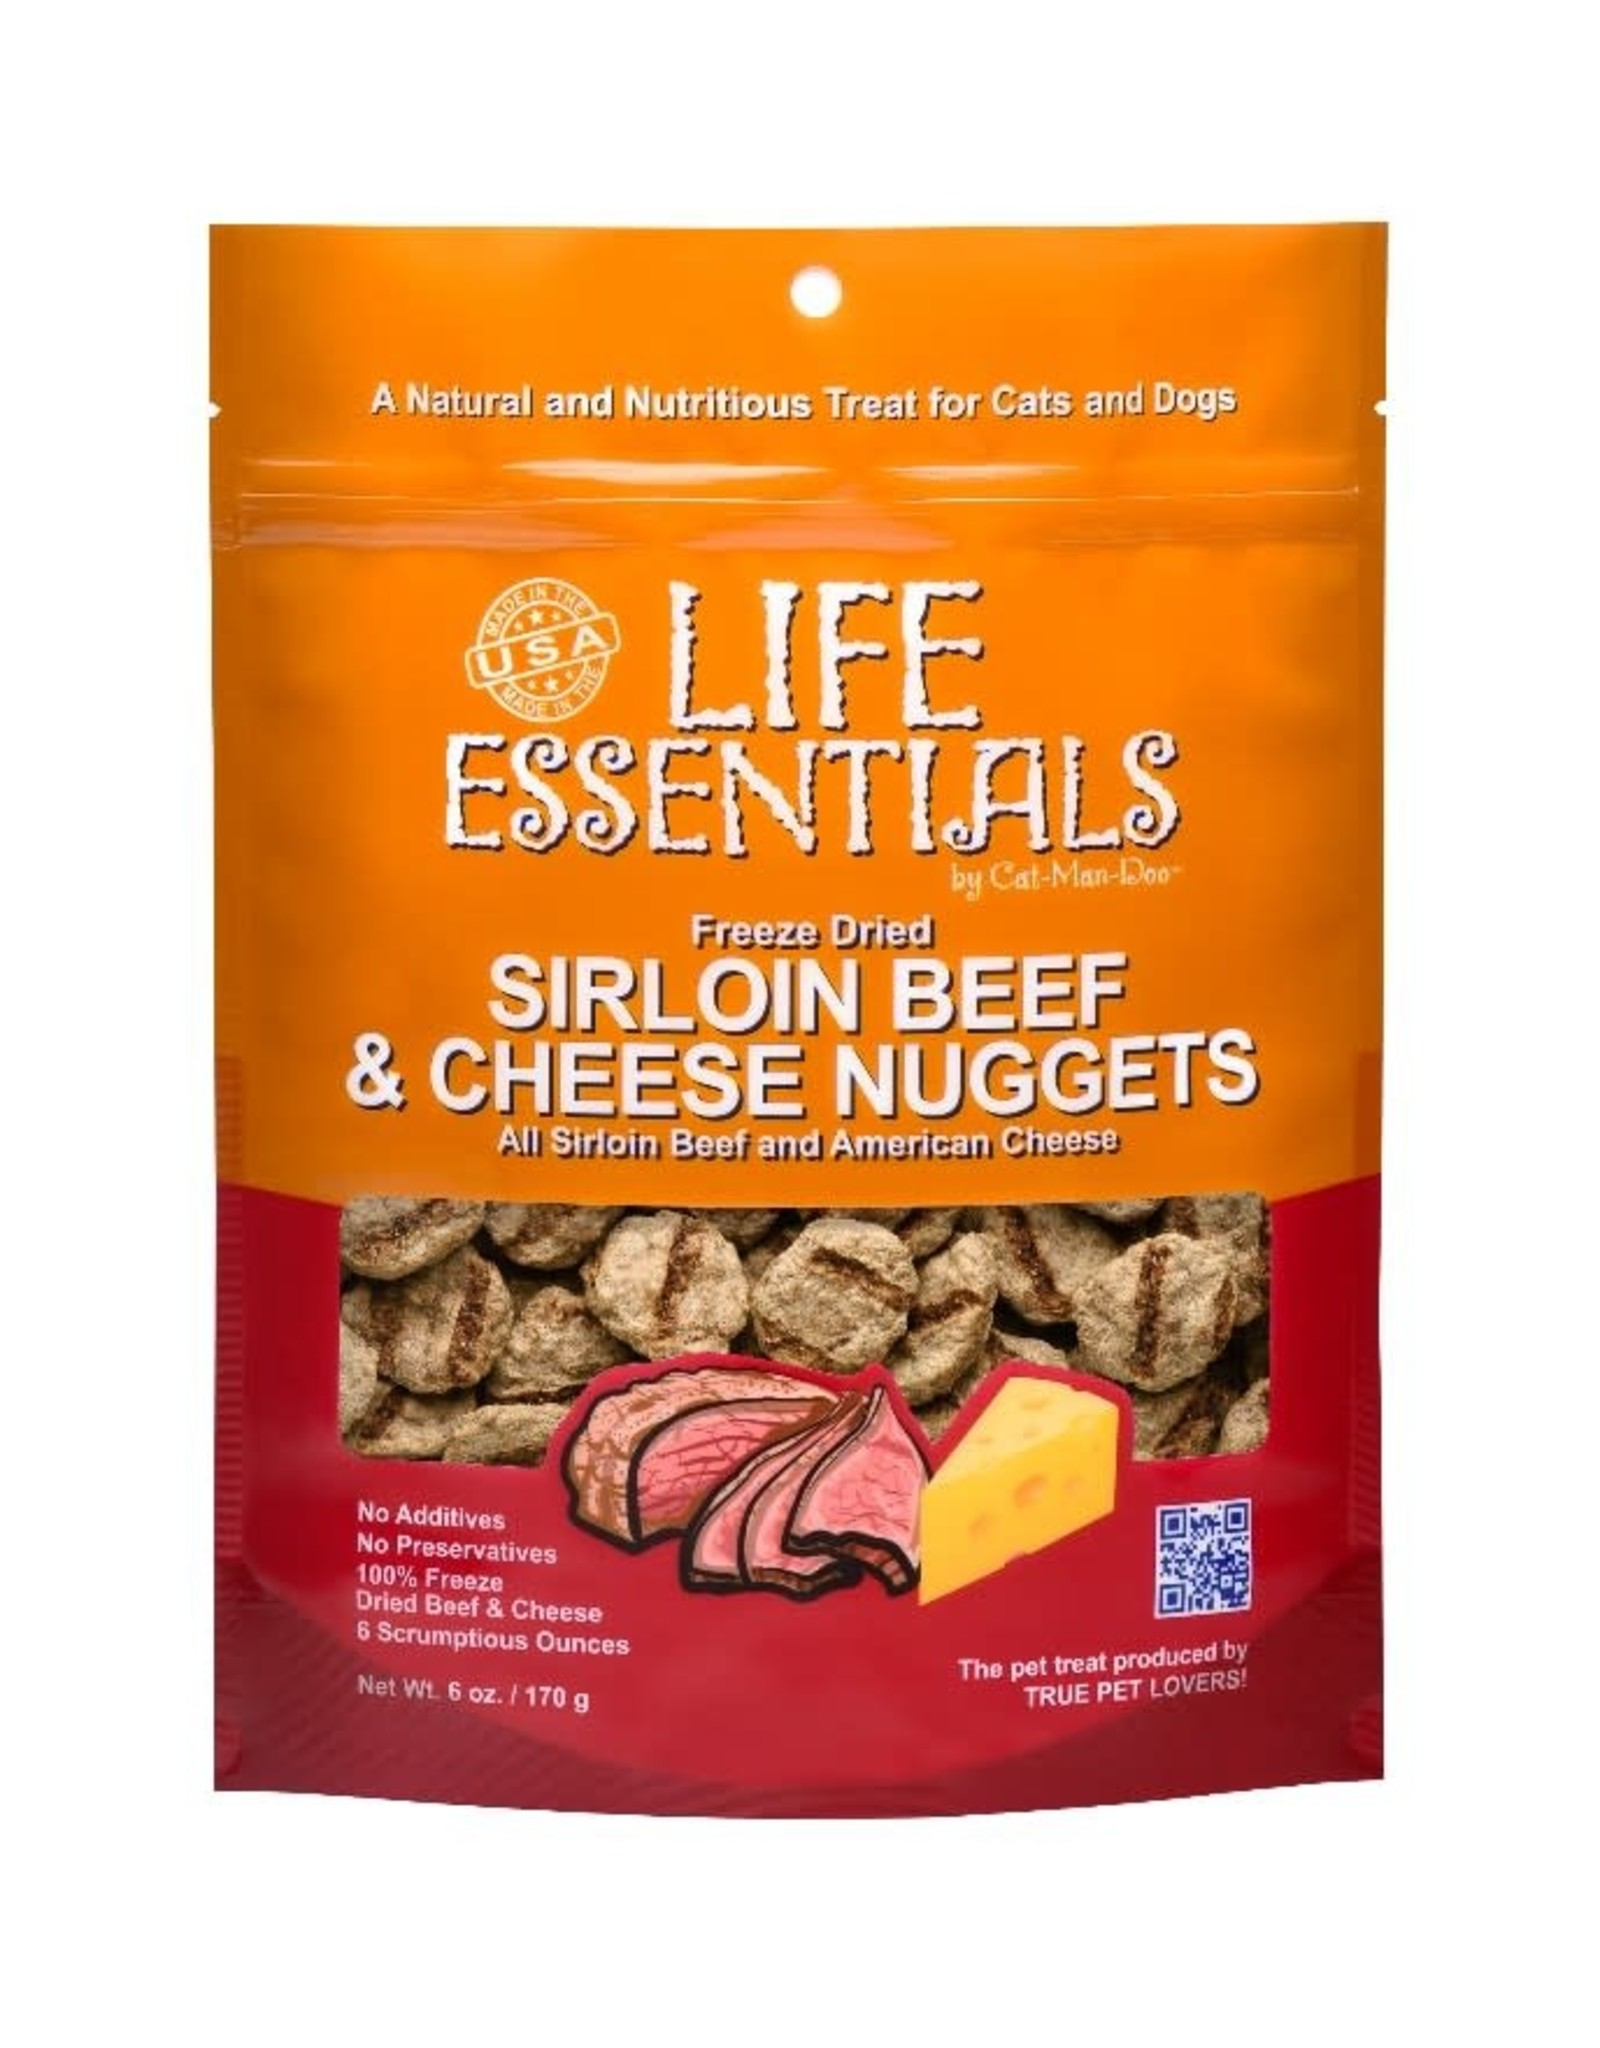 Cat-Man-Doo Cat-Man-Doo Life Essentials Freeze Dried Sirloin Beef and Cheese Nuggets 3oz